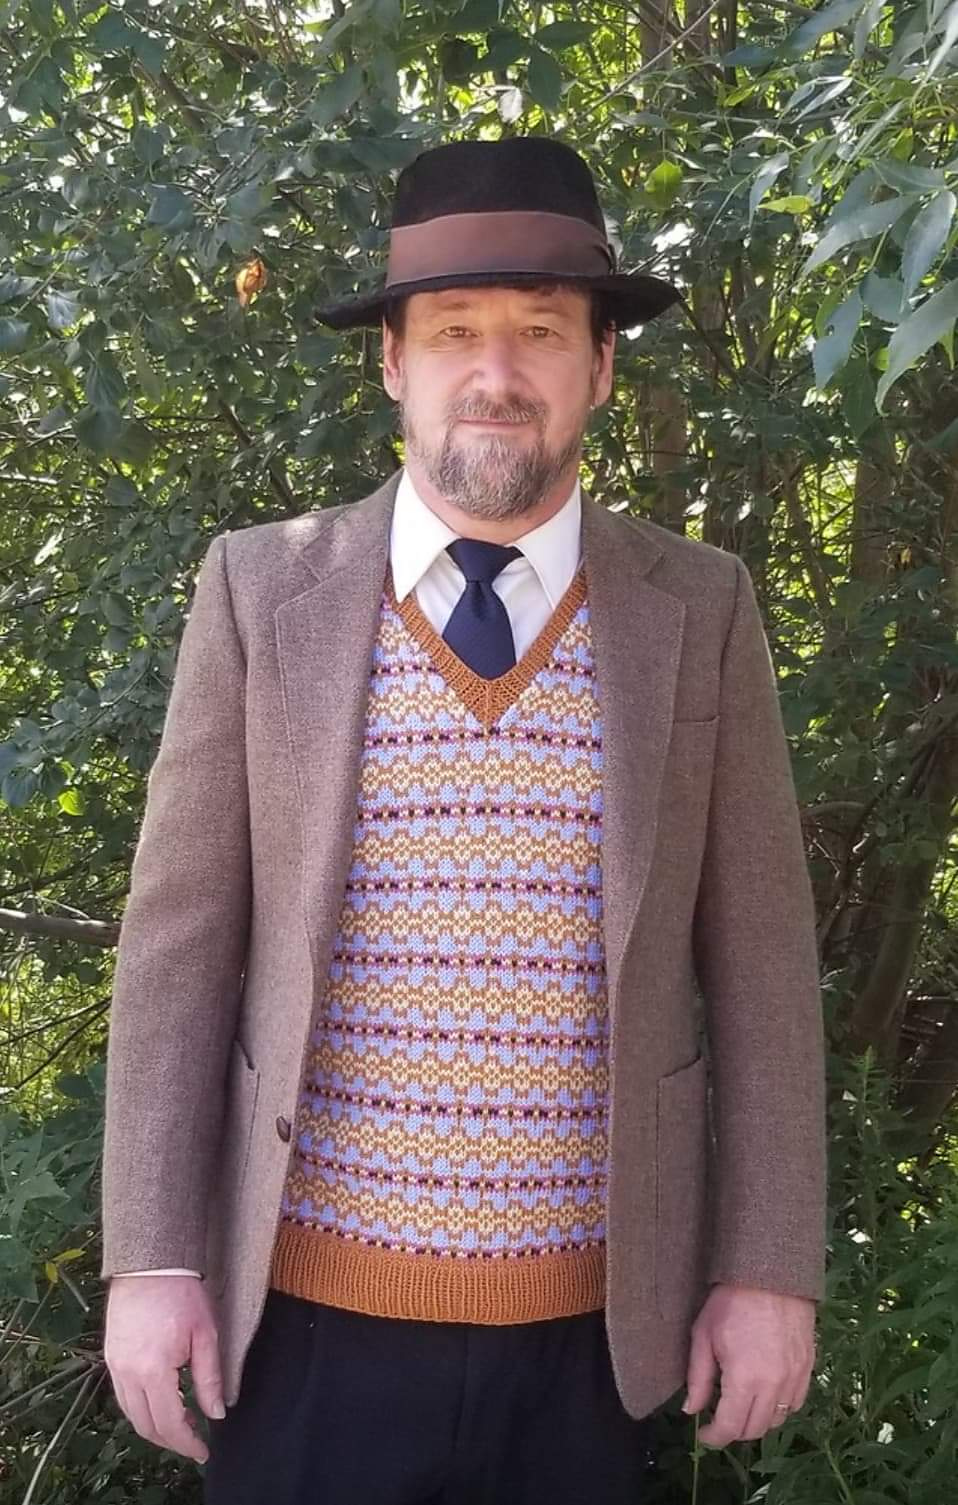 My husband modelling the vest